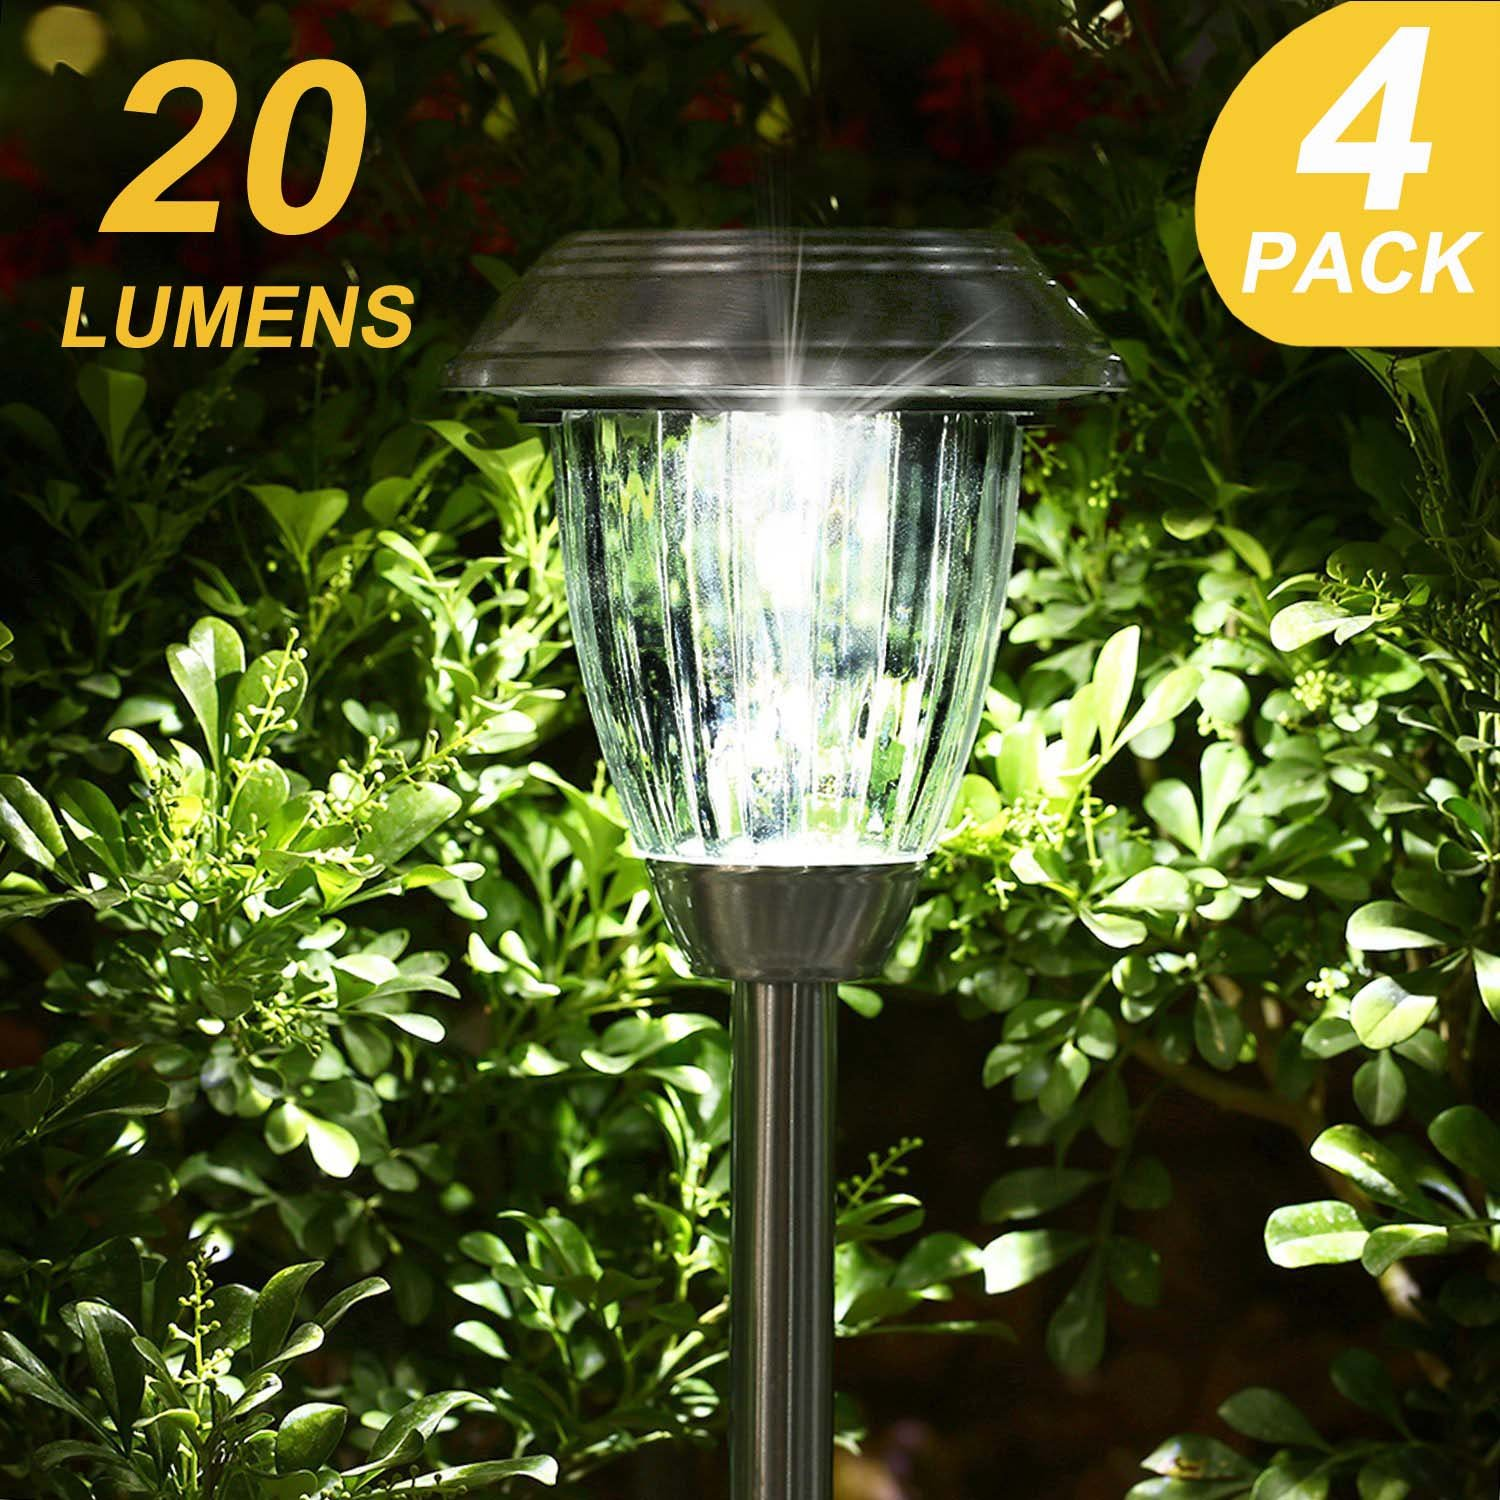 Outdoor Solar Pathway Lights 20 lumens super bright solar lights outdoorgarden solar pathway 20 lumens super bright solar lights outdoorgarden solar pathway lightsstainless steel landscape lighting for lawnpatioyardwalkwaydriveway set of 4 workwithnaturefo